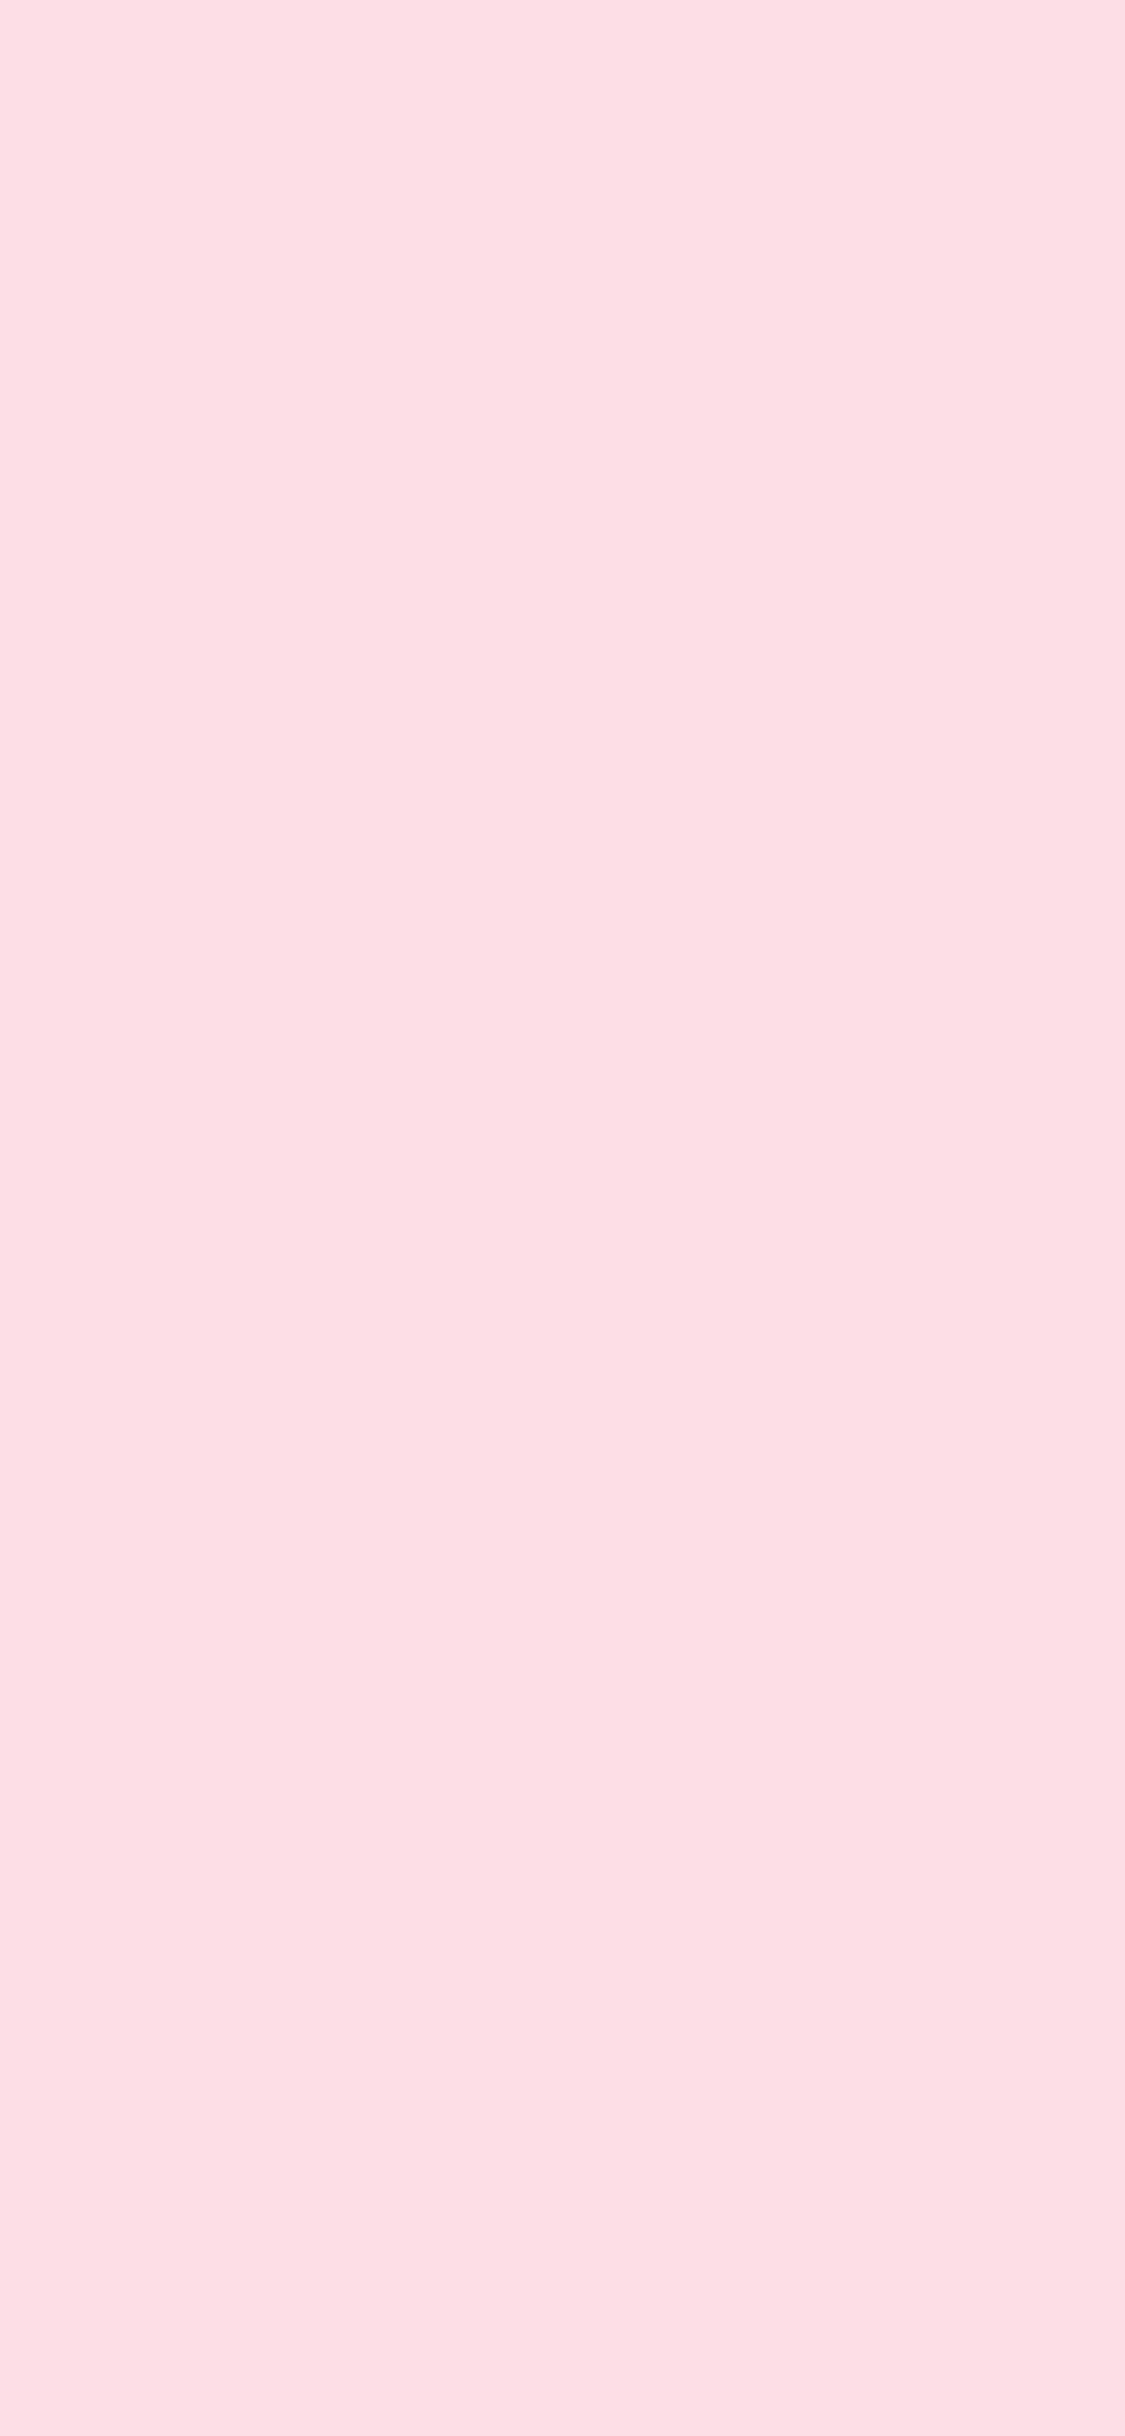 1125x2436 1125x2436 Piggy Pink Solid Color Background | Pink wallpaper ...